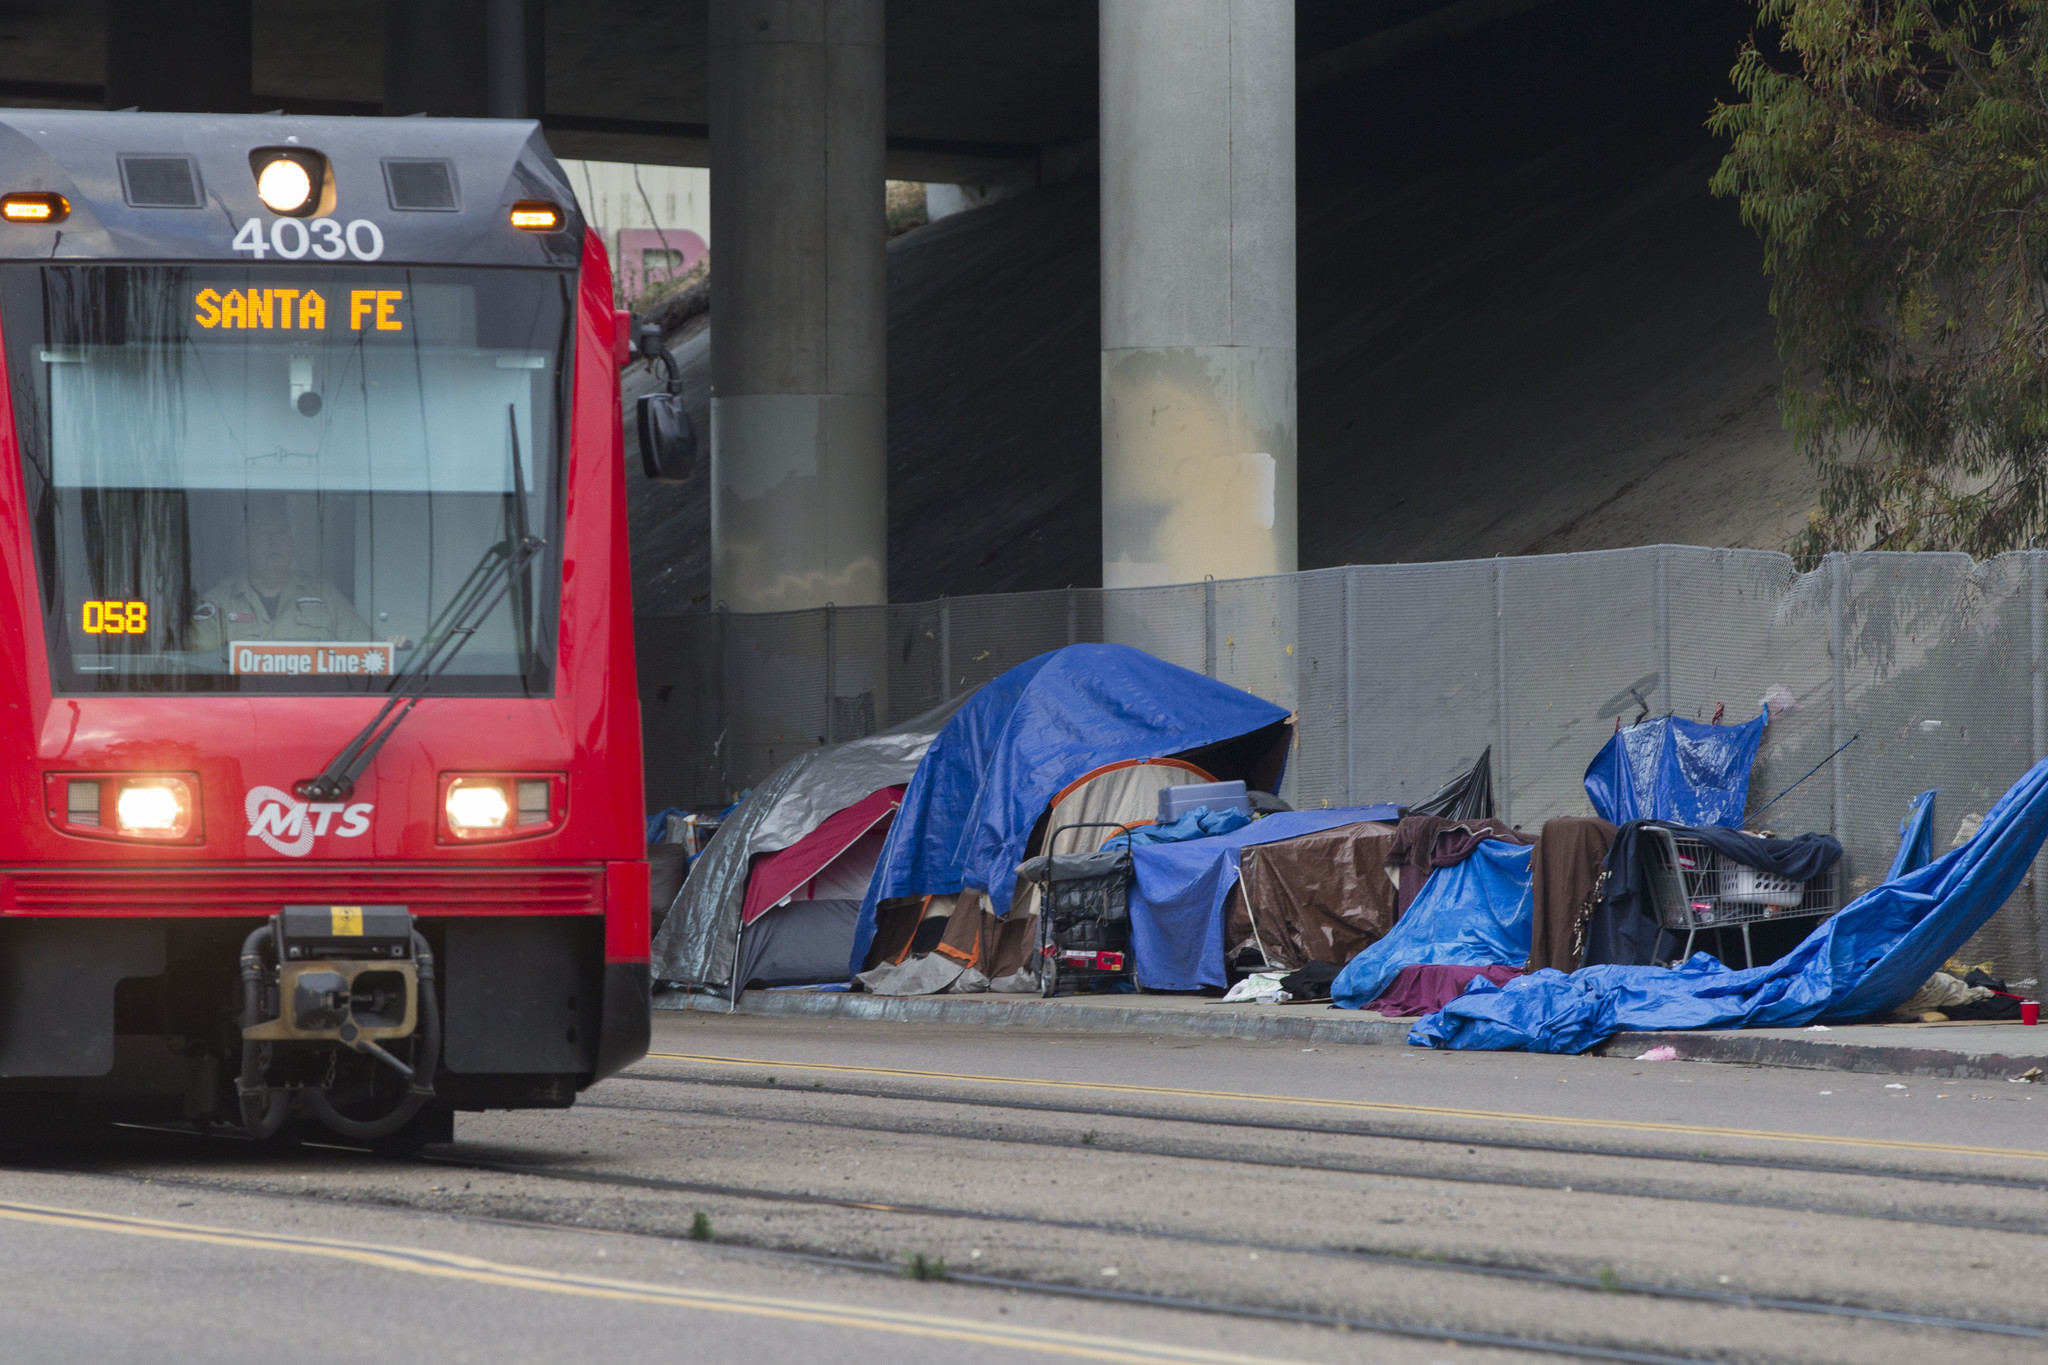 Shelters Face Pressure As Homeless Days Of Rain The San